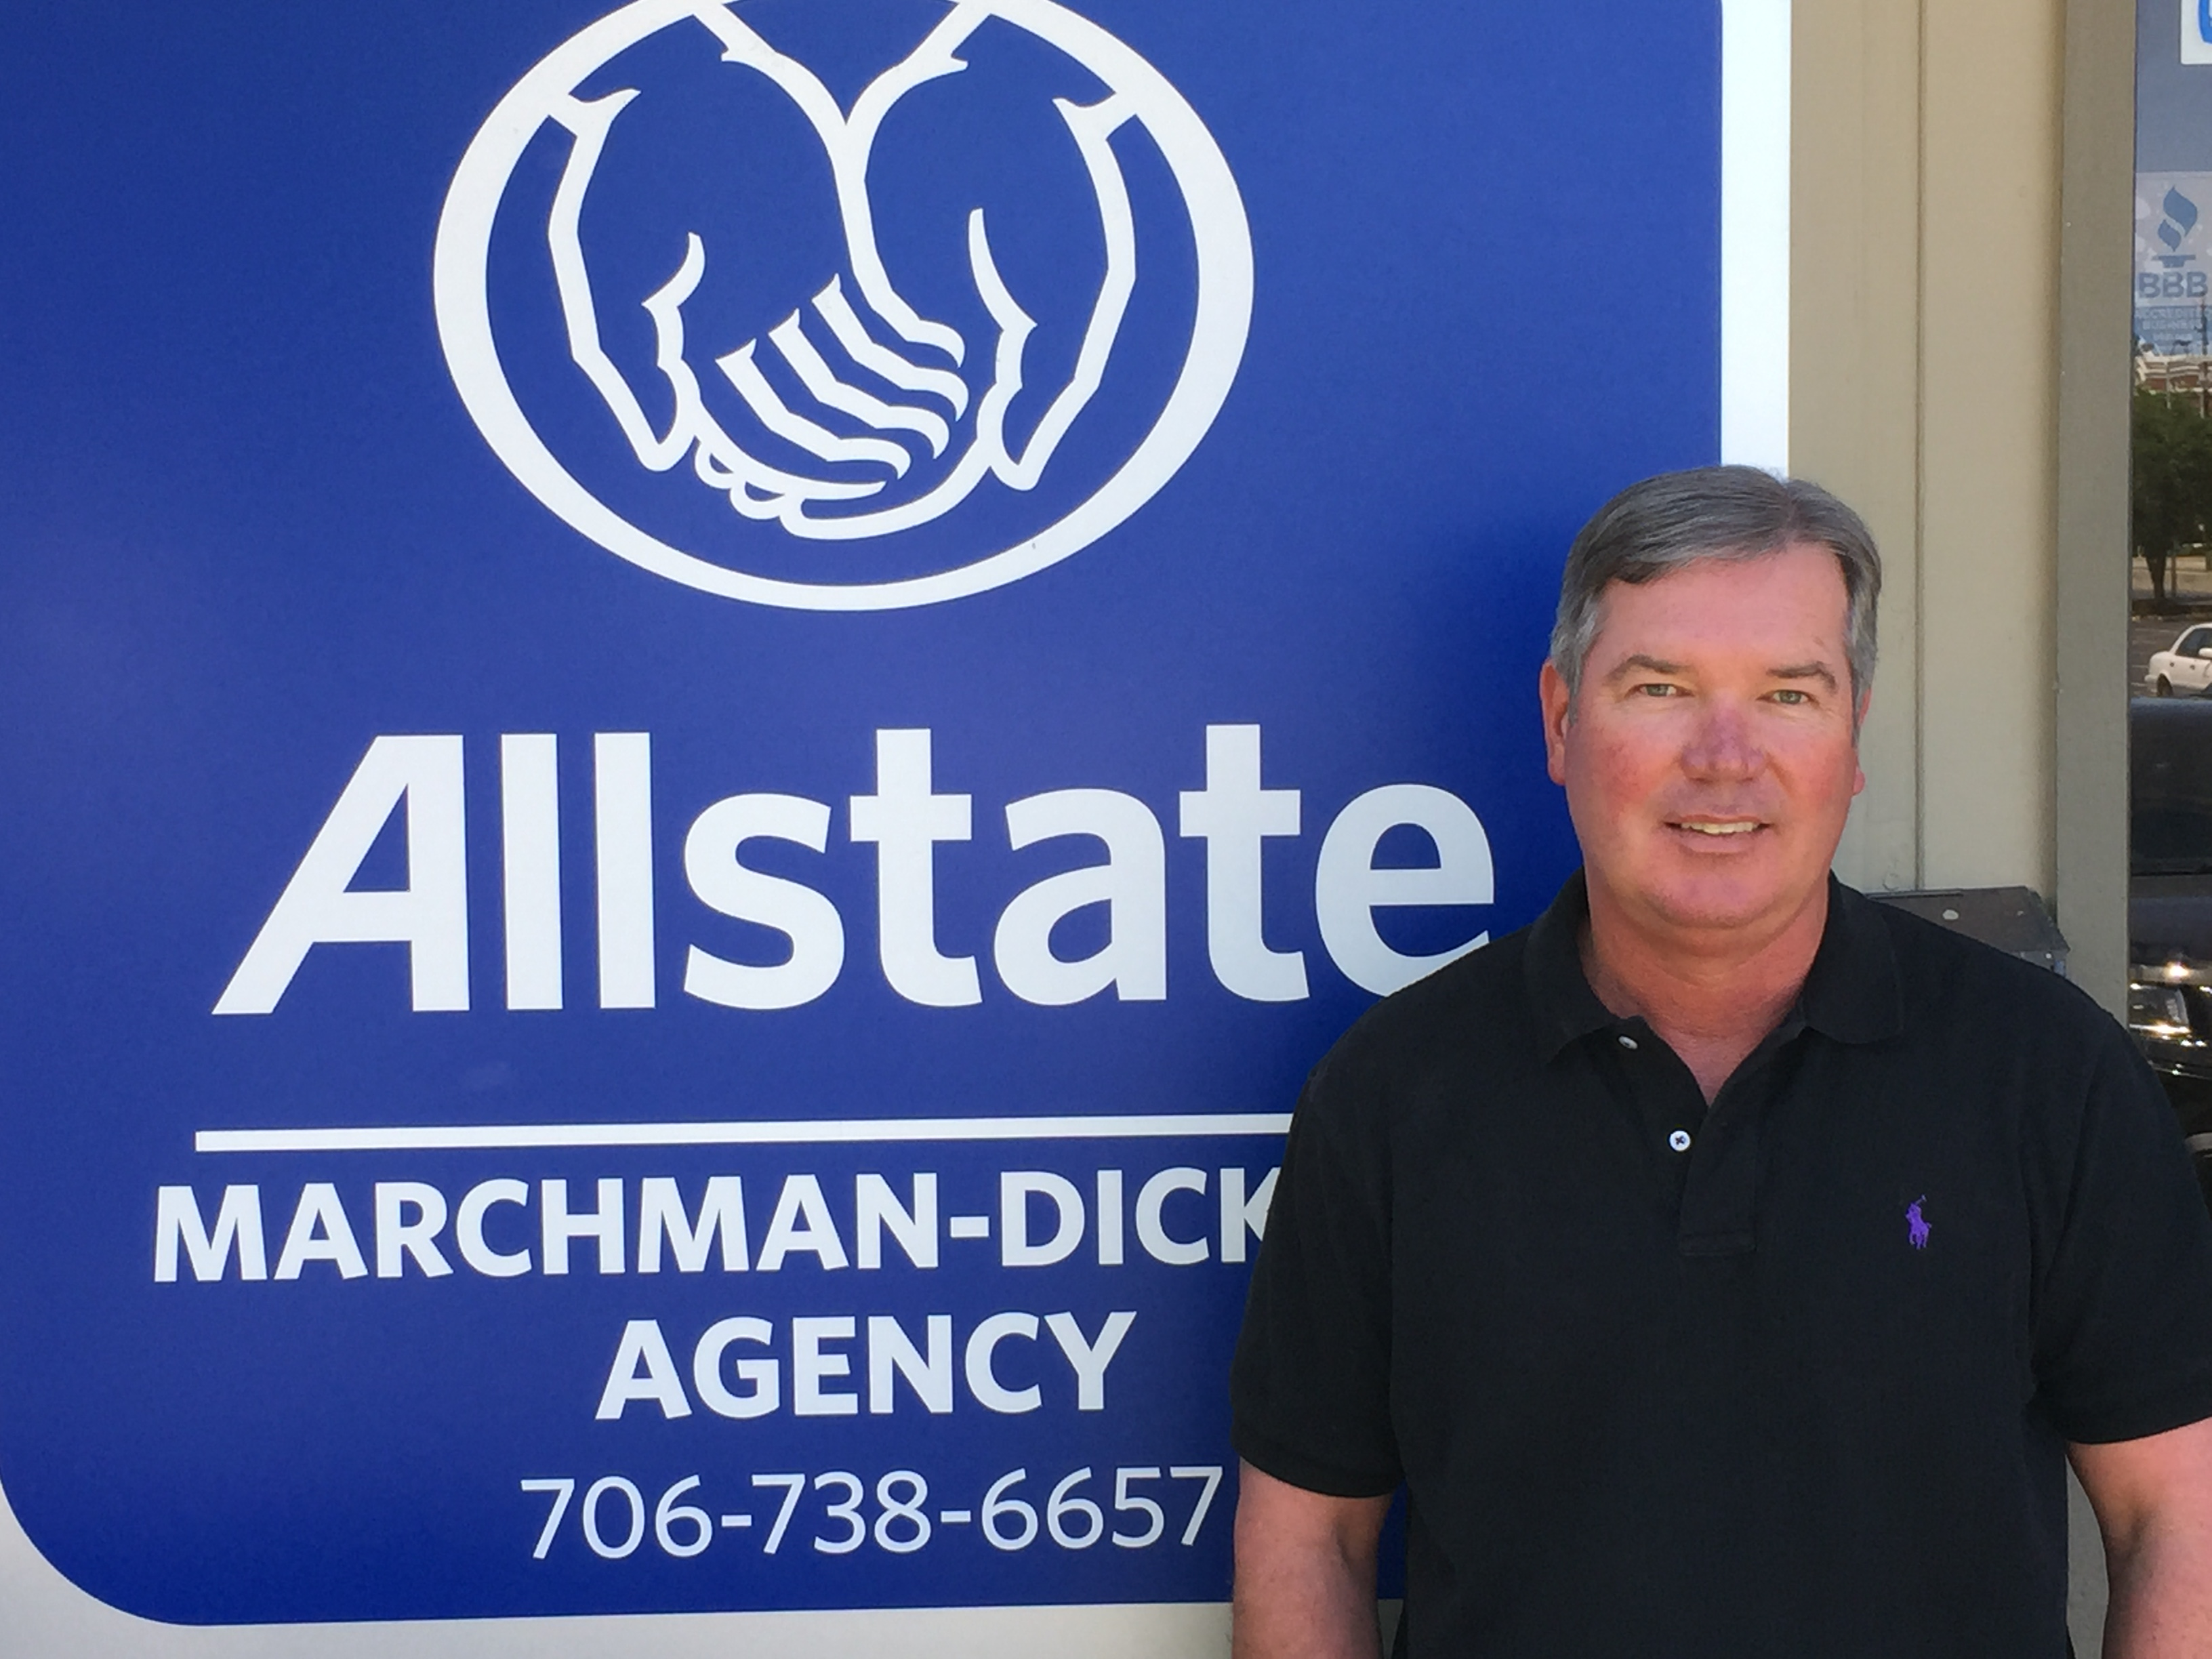 Allstate Insurance: The Dickson-Marchman Agency